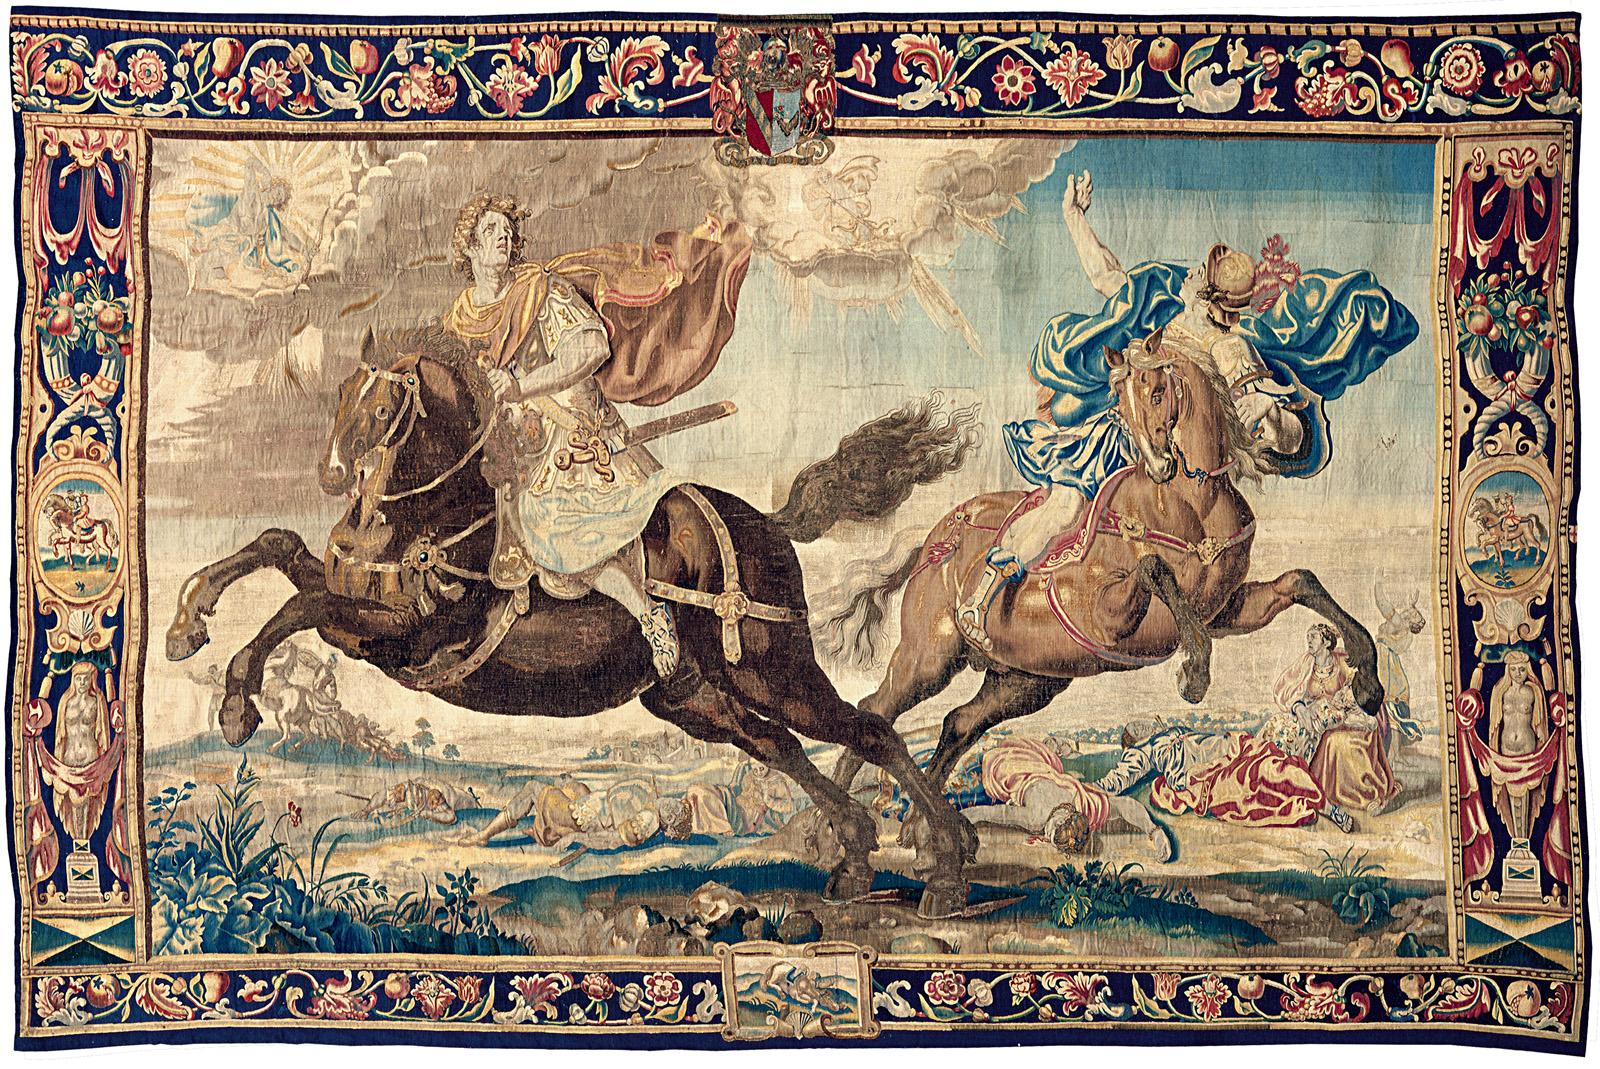 The Stapleford Park Tapestry